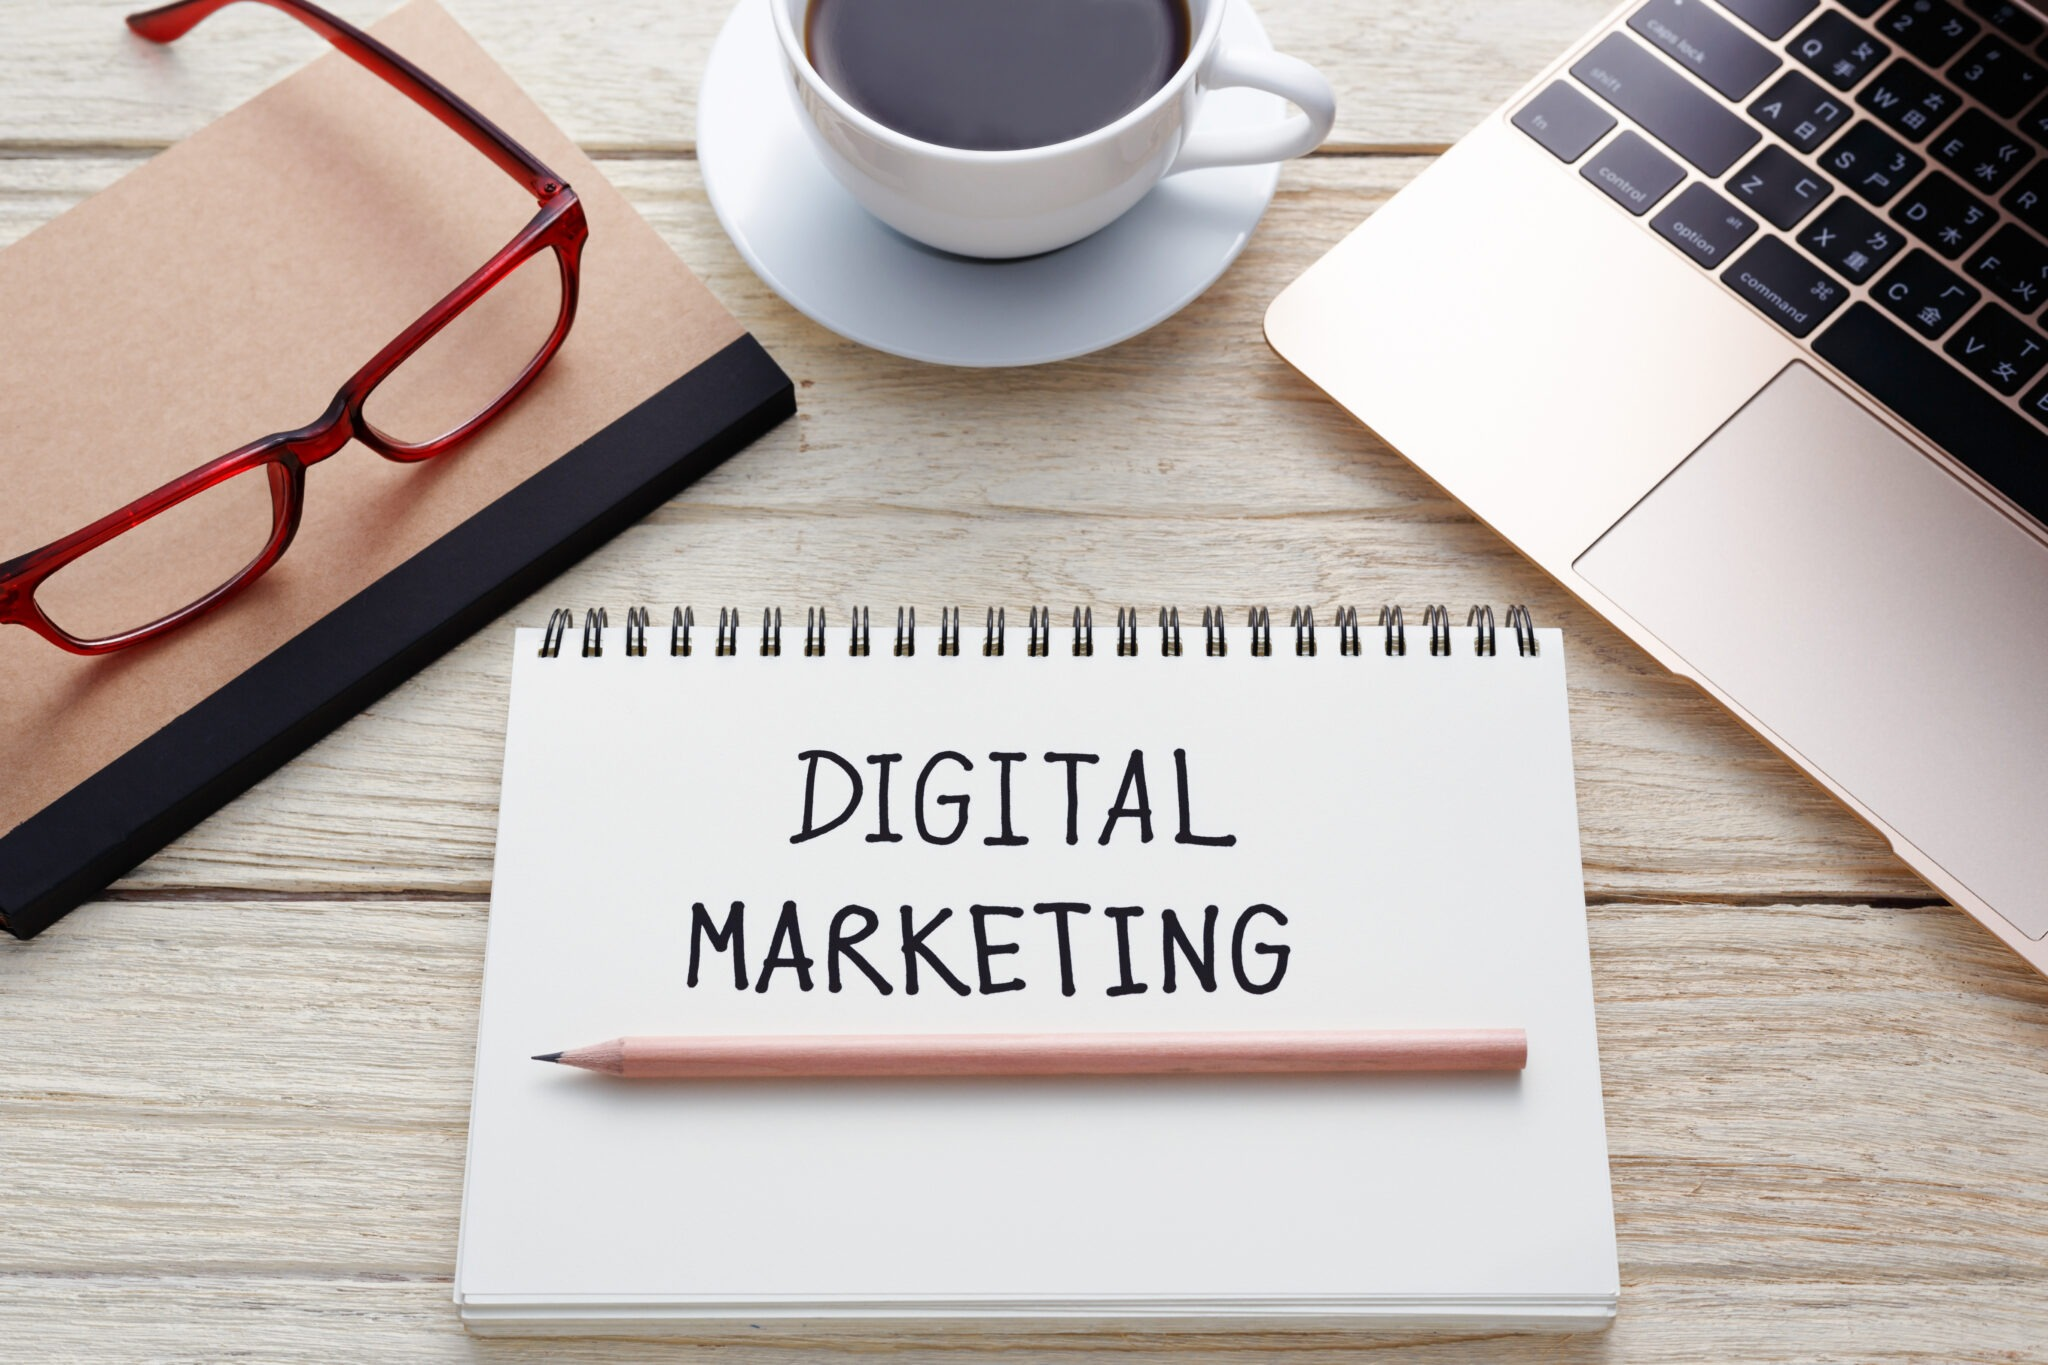 Understanding the Services Digital Marketing Provides